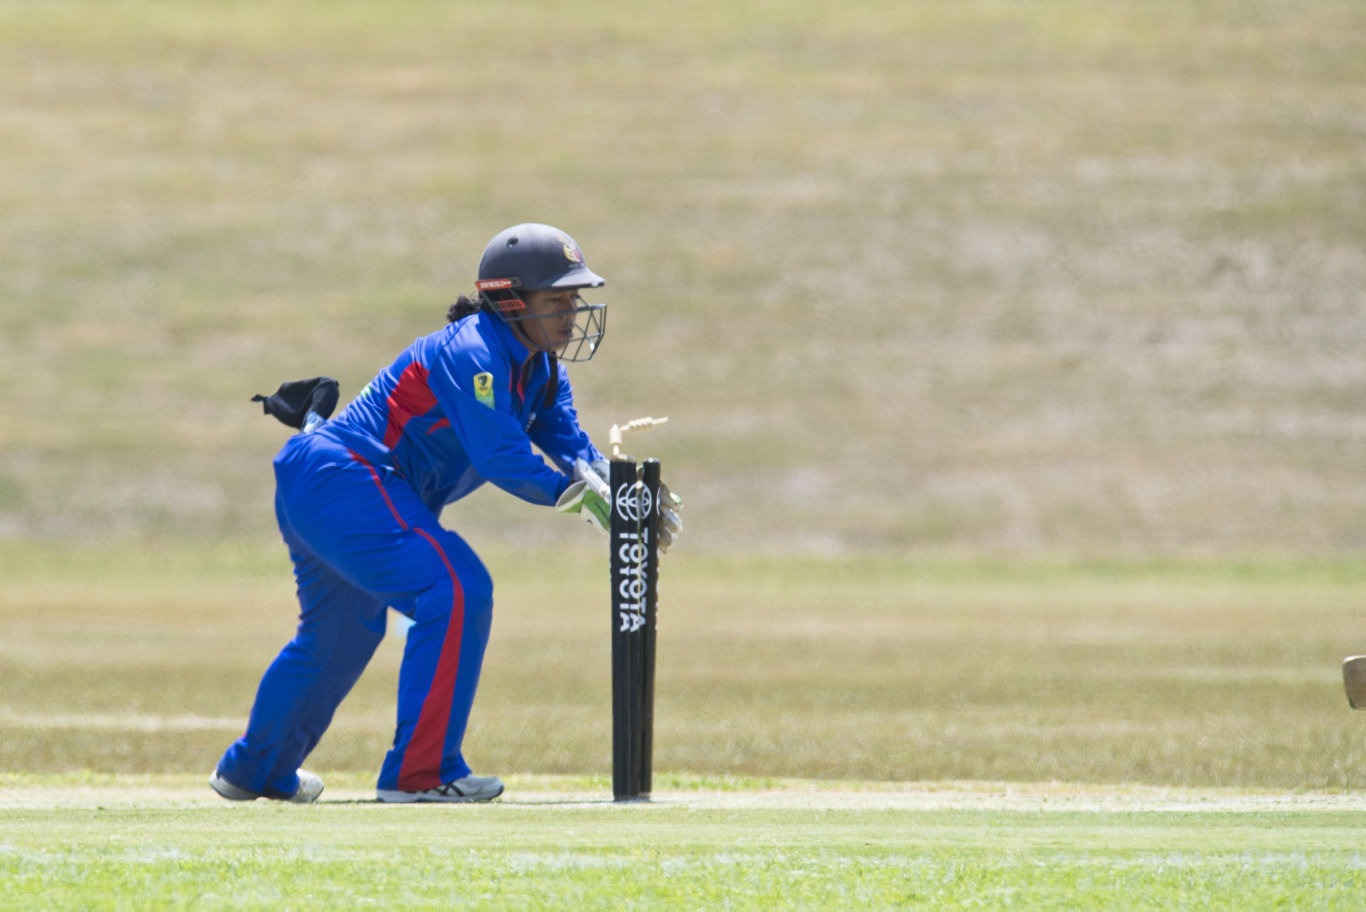 East Asia Pacific captain/wicketkeeper Brenda Tau stumps Western Australia's Chloe Wain in Australian Country Cricket Championships women's division round six at Highfields Sport Park, Wednesday, January 8, 2020. Picture: Kevin Farmer